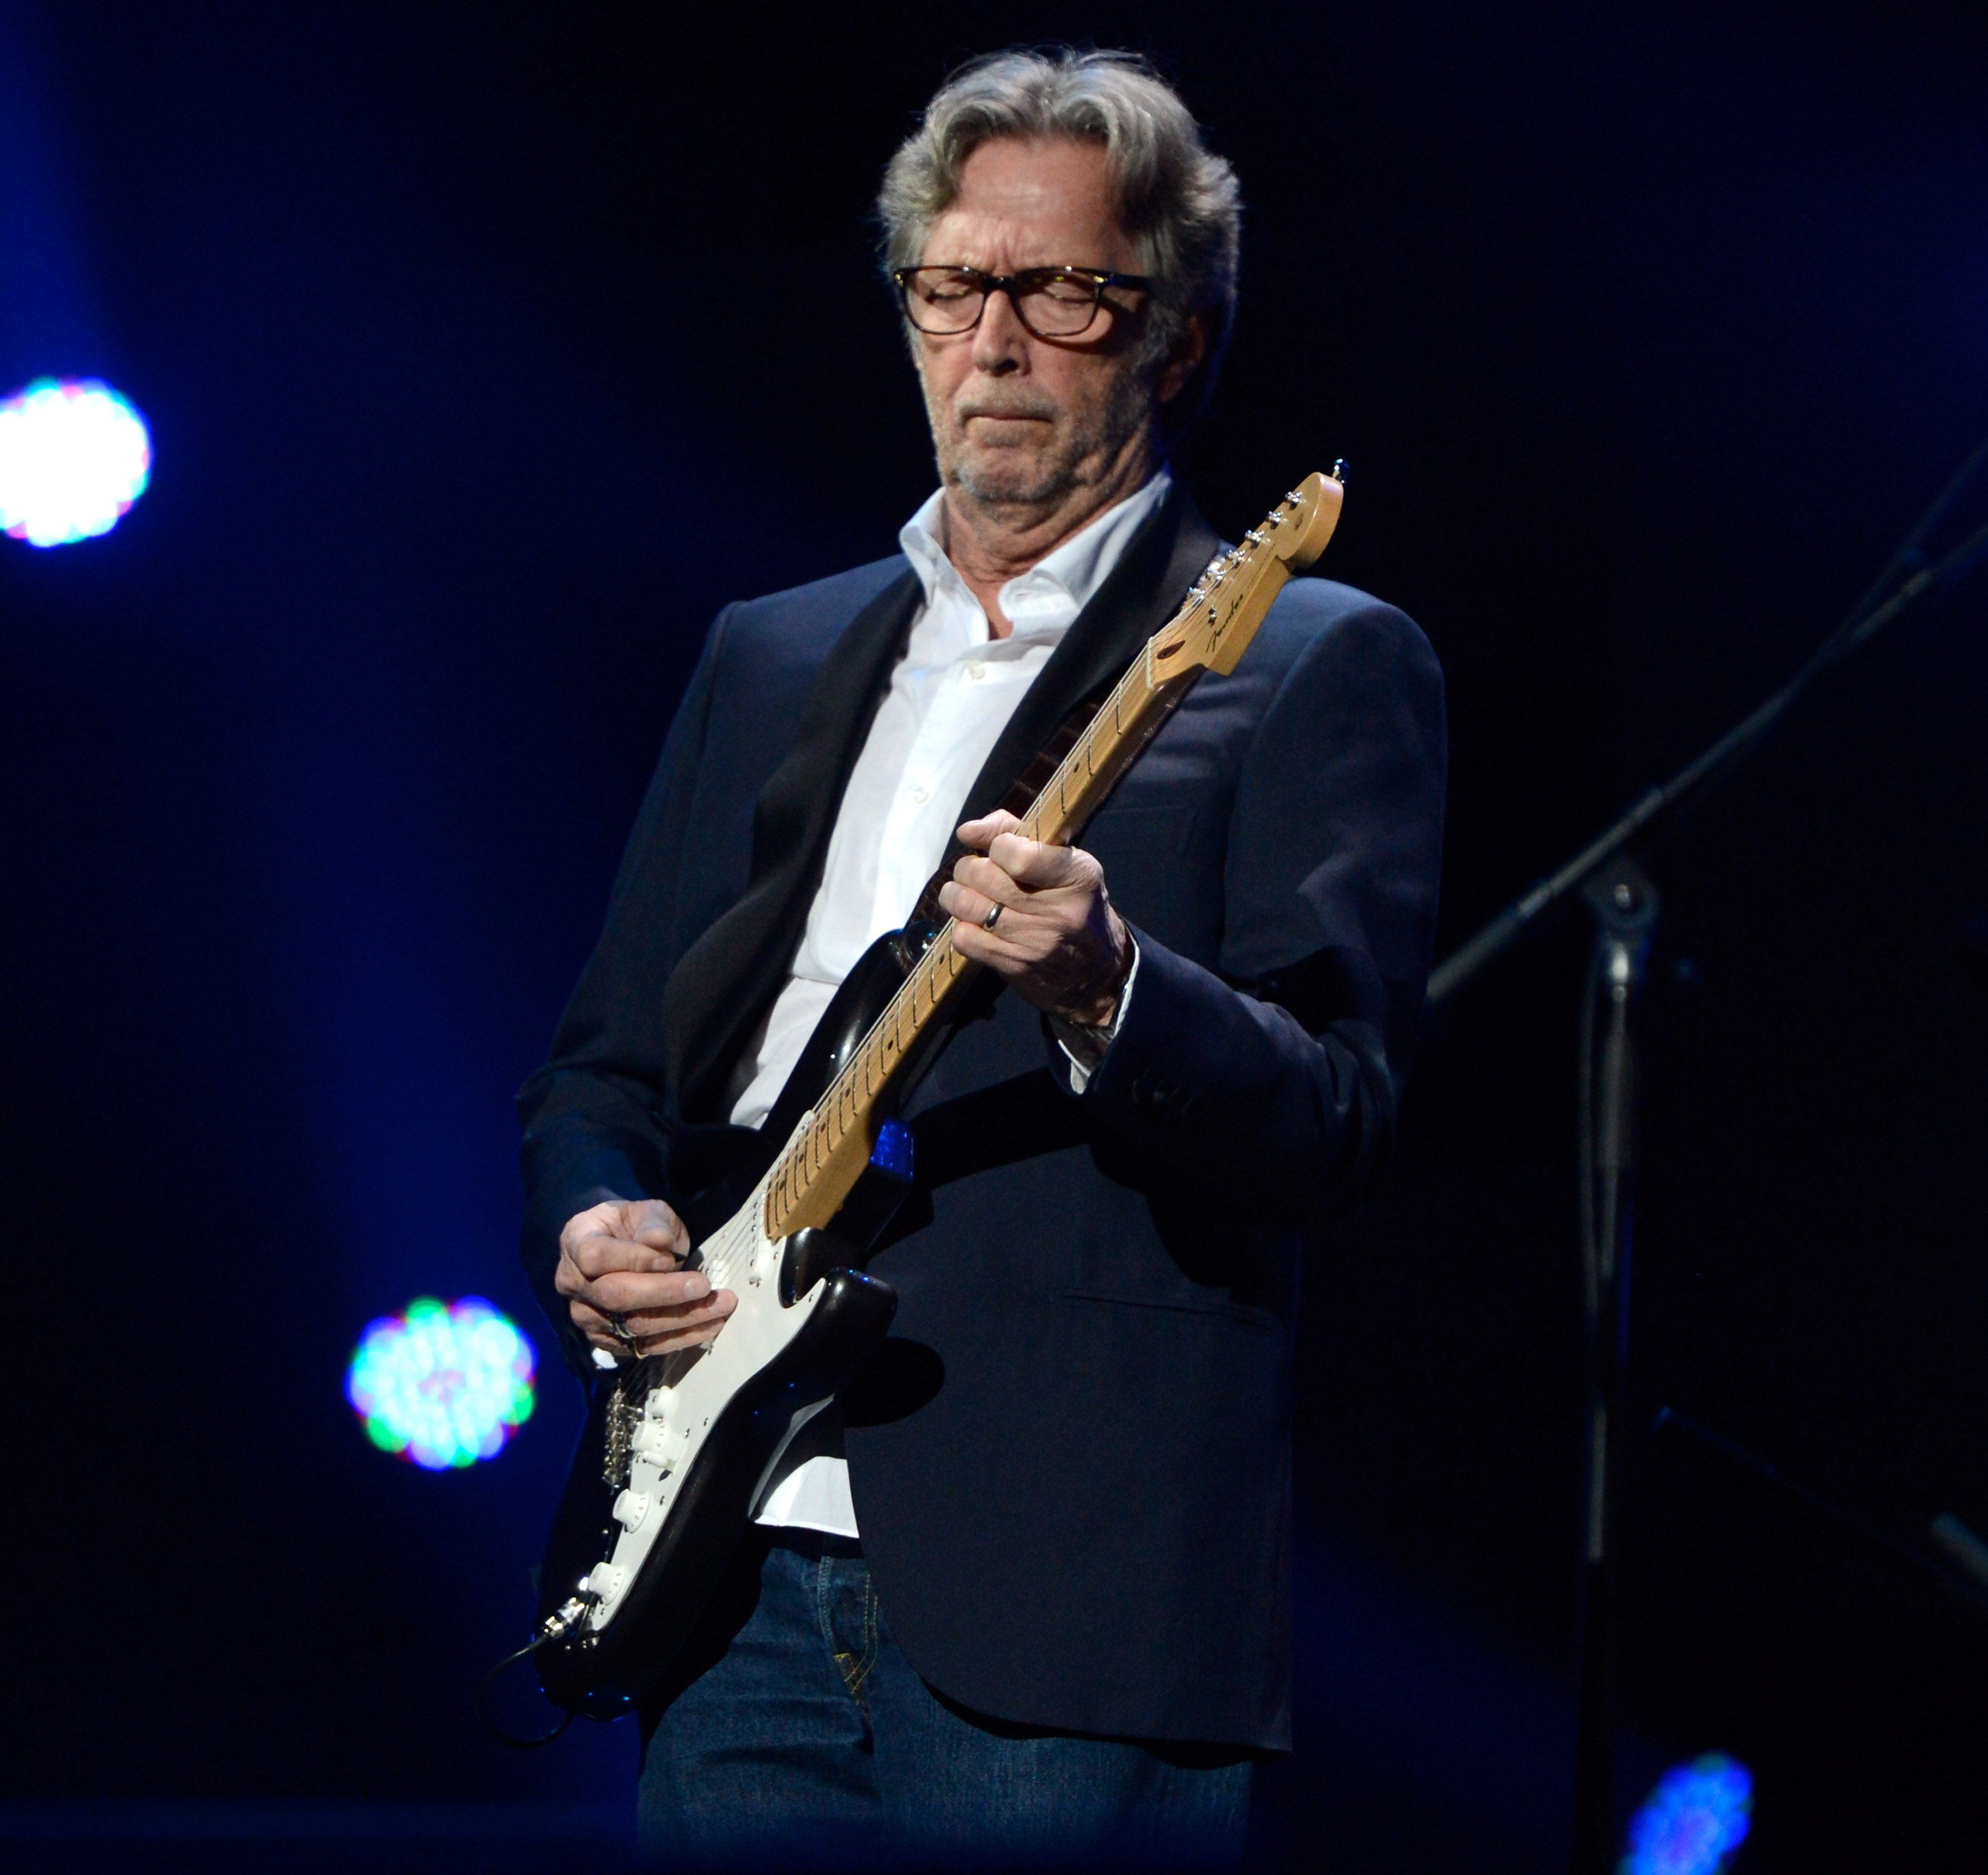 Eric Clapton Shares New Track 'For Jack' to Honor Jack Bruce